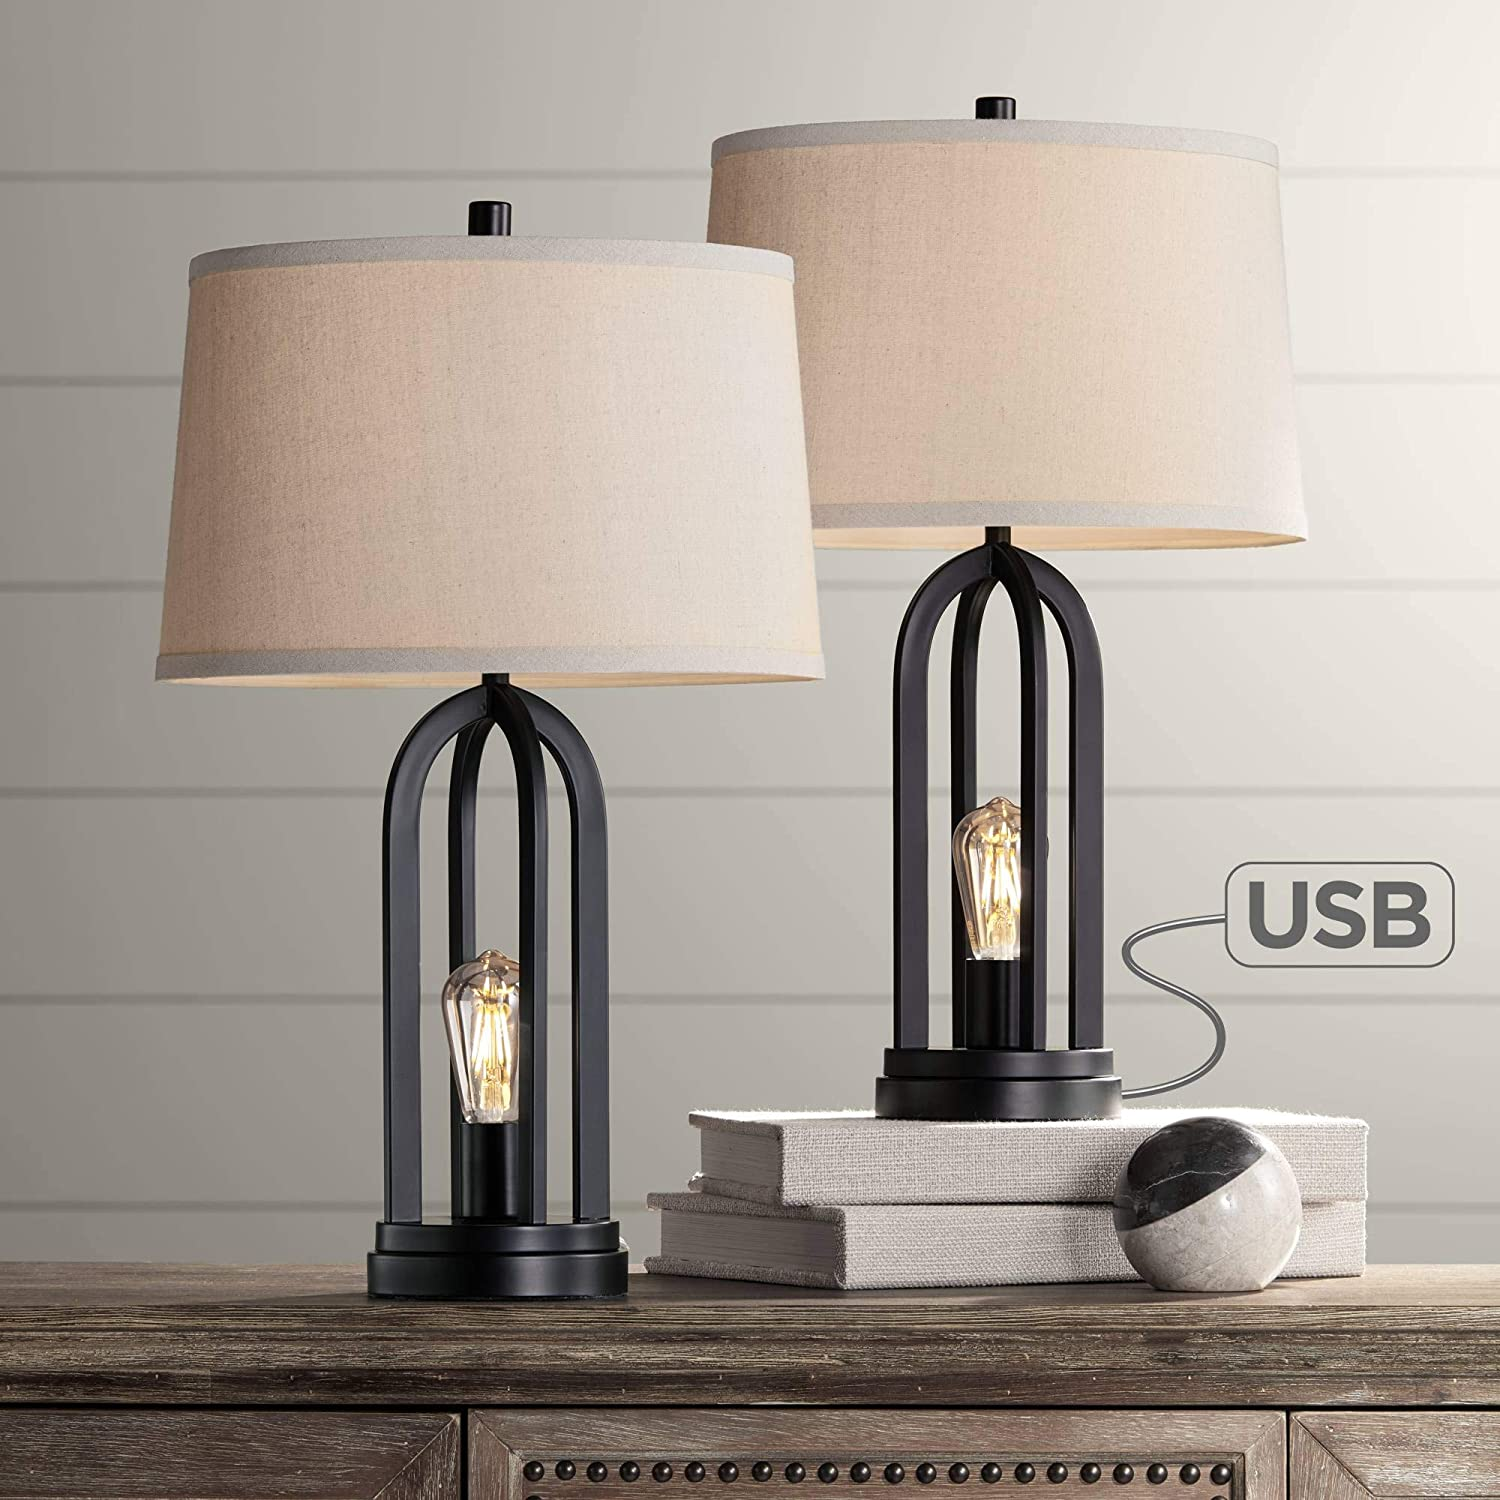 Marcel Modern Industrial Table Lamps Set of 2 with Nightlight LED USB Port Black Linen Shade for Living Room Bedroom